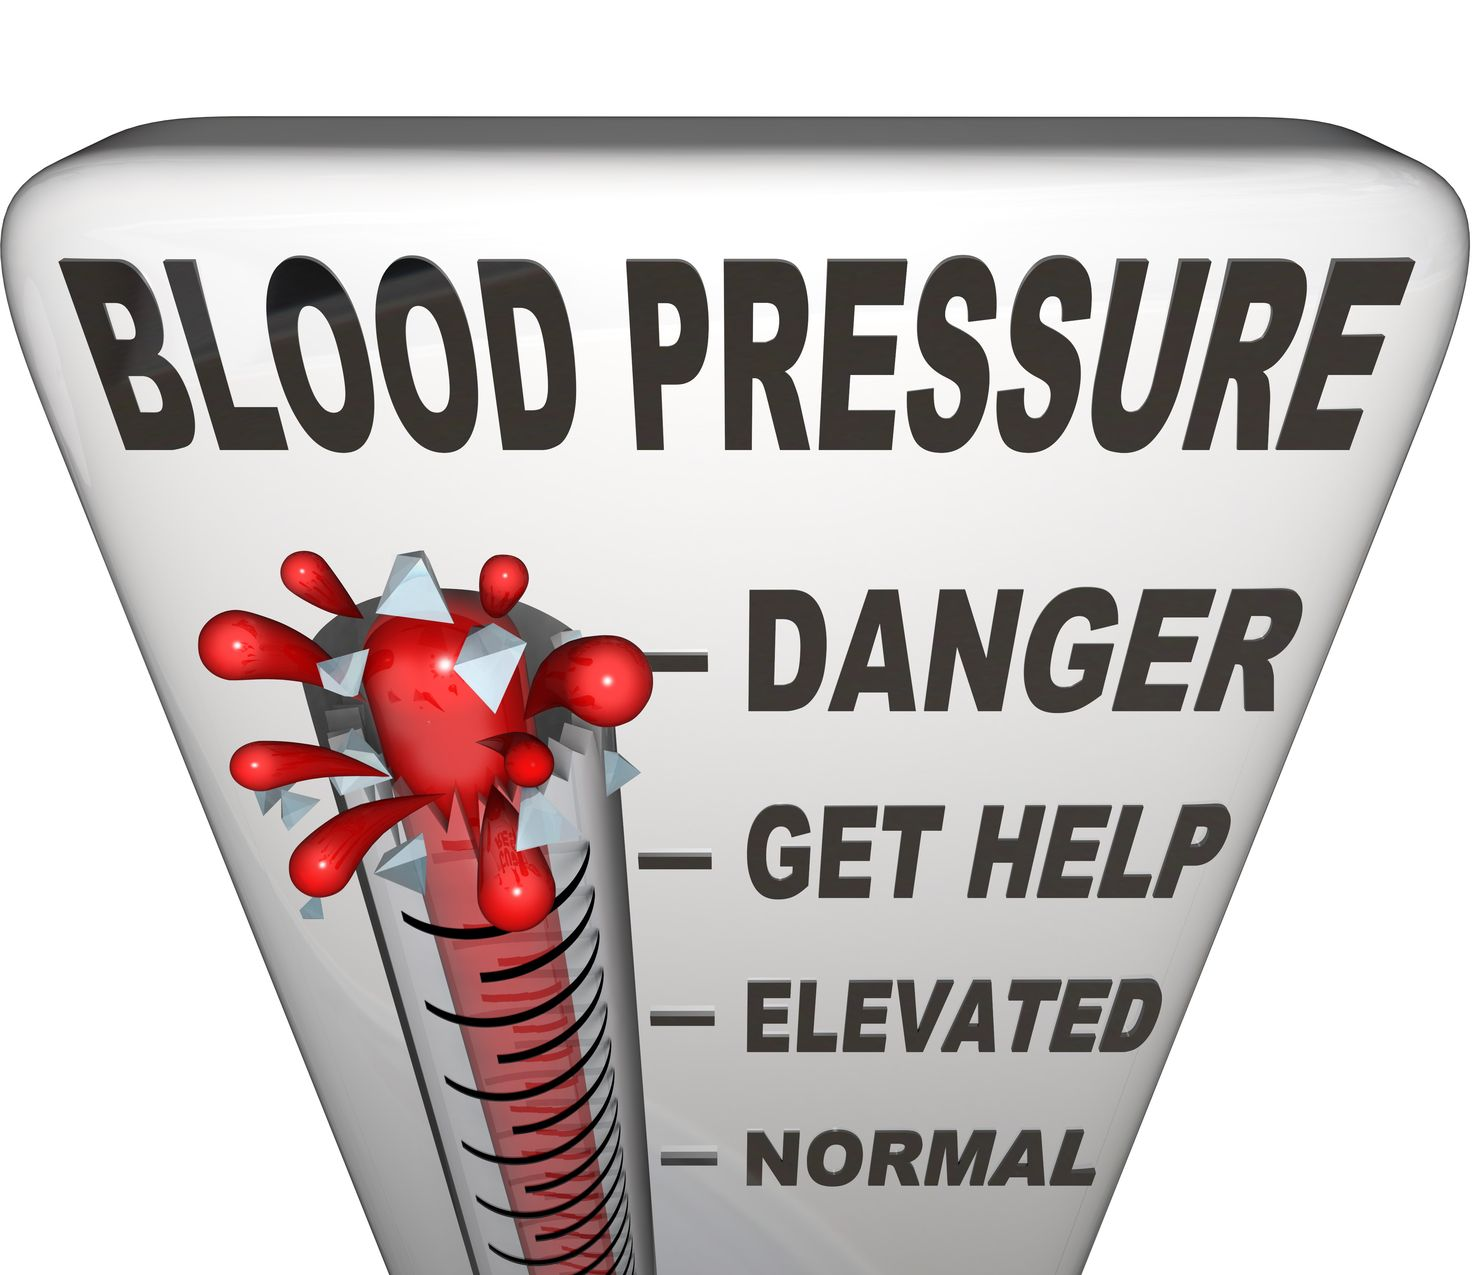 Reasons For High Blood Pressure  http://www.info-on-high-blood-pressure.com/reasonsforhighbloodpressure.html